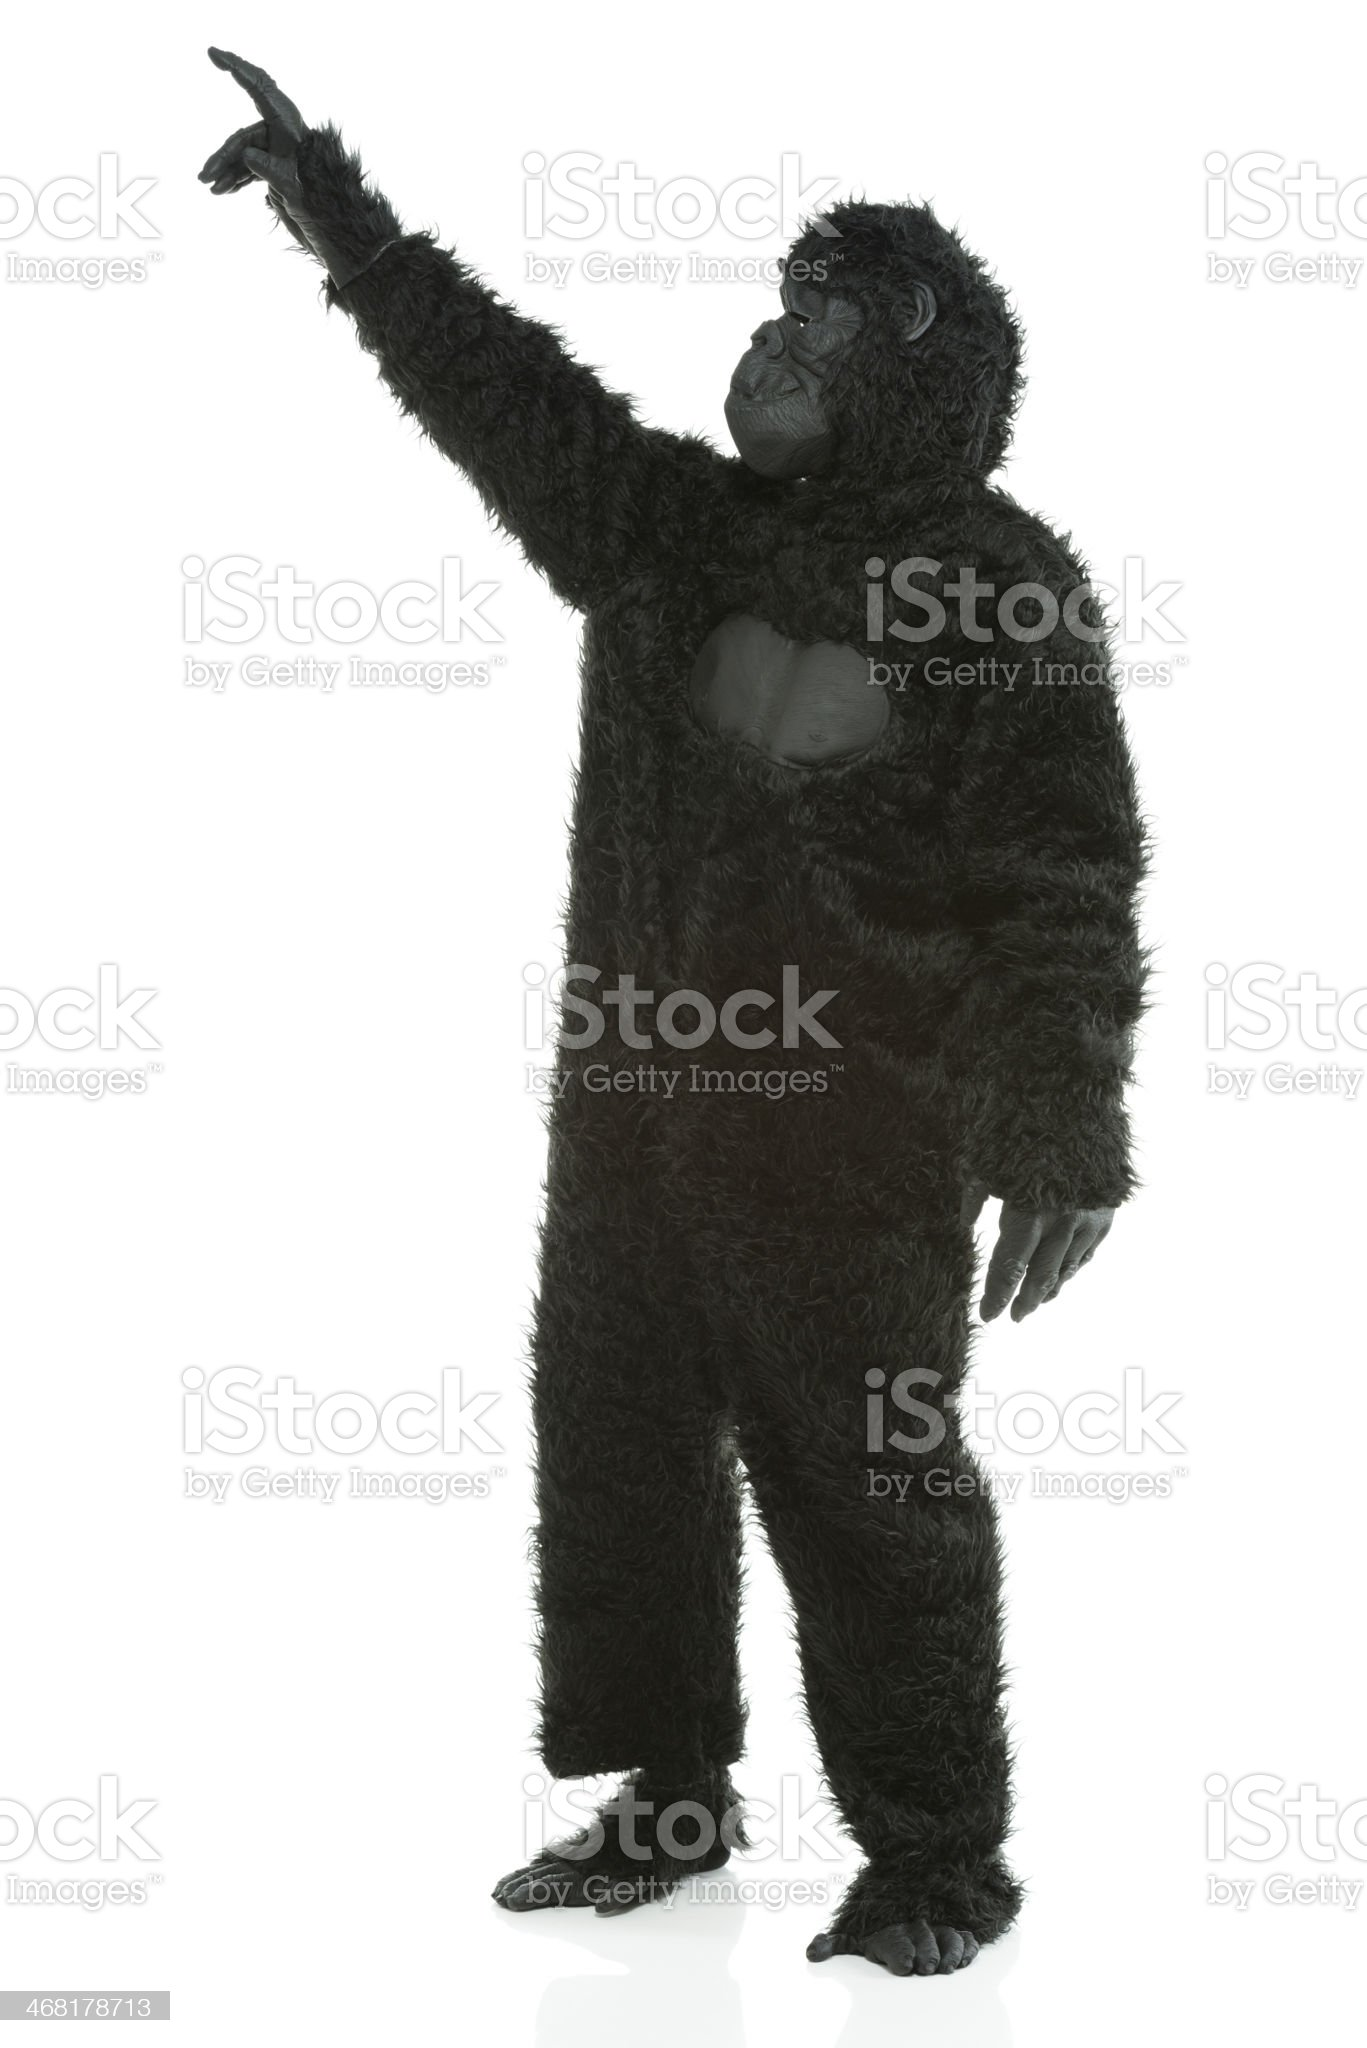 Man wearing Gorilla costume and pointing royalty-free stock photo